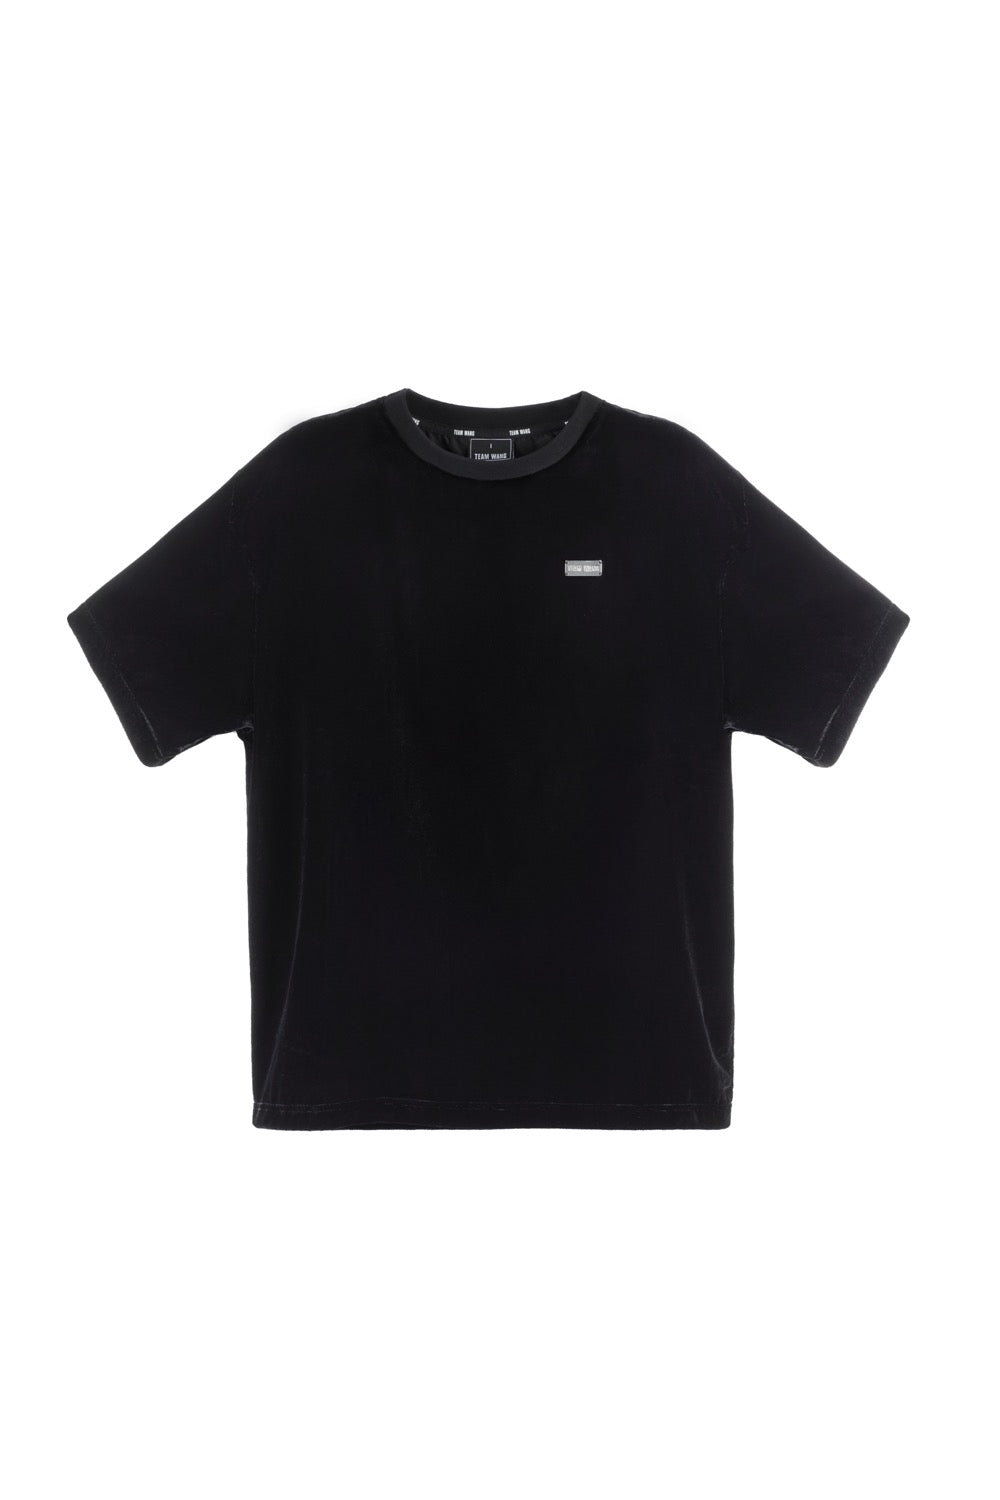 TEAM WANG PRINTED LOGO VELVET TEE